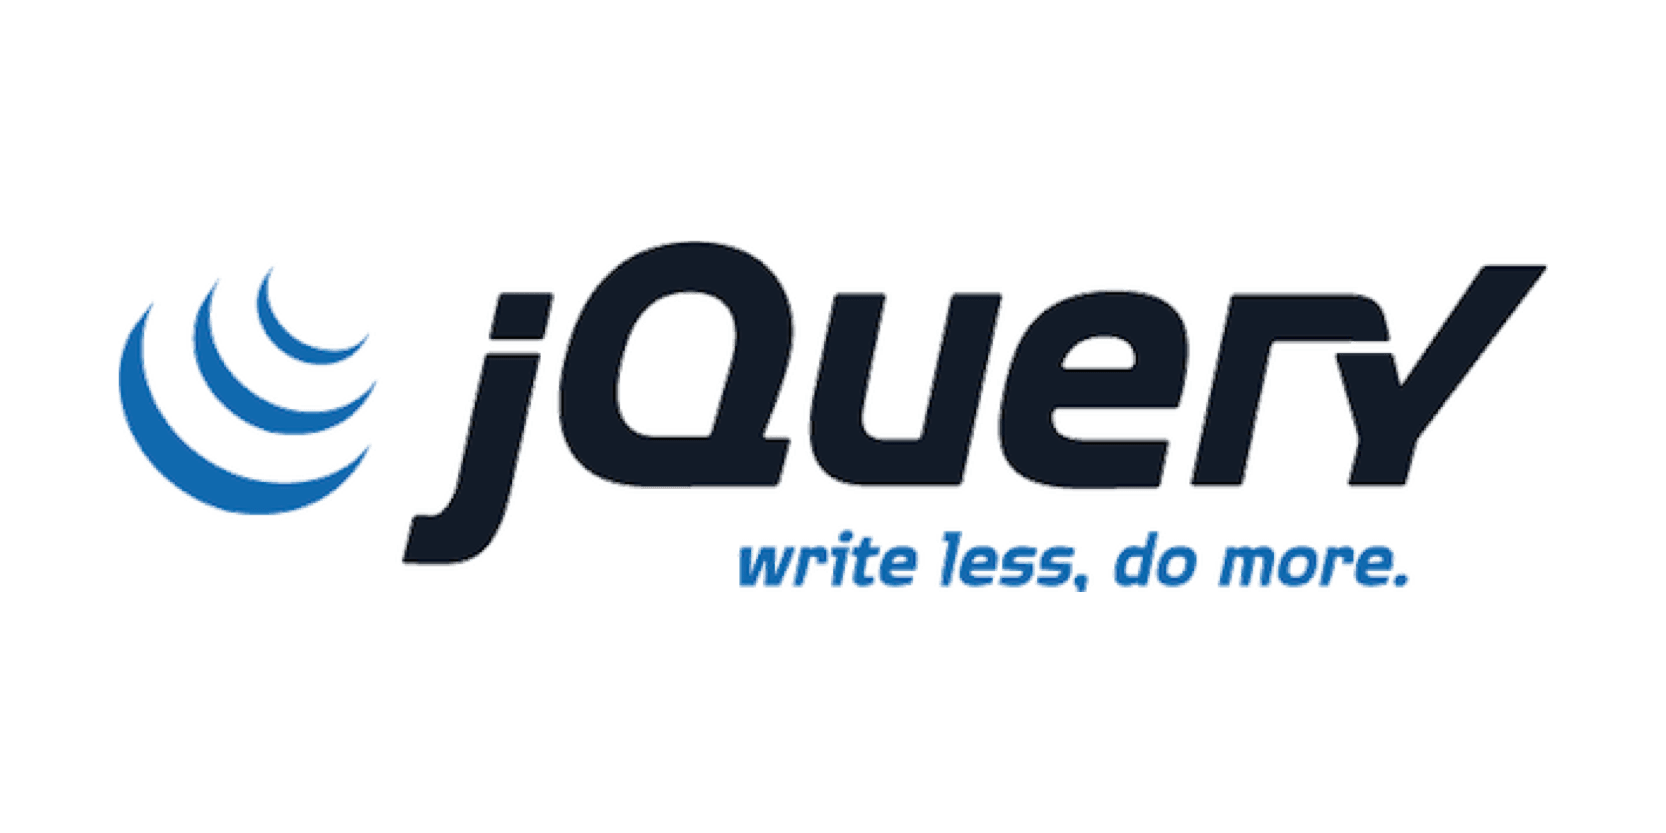 jquery - Front End Developer